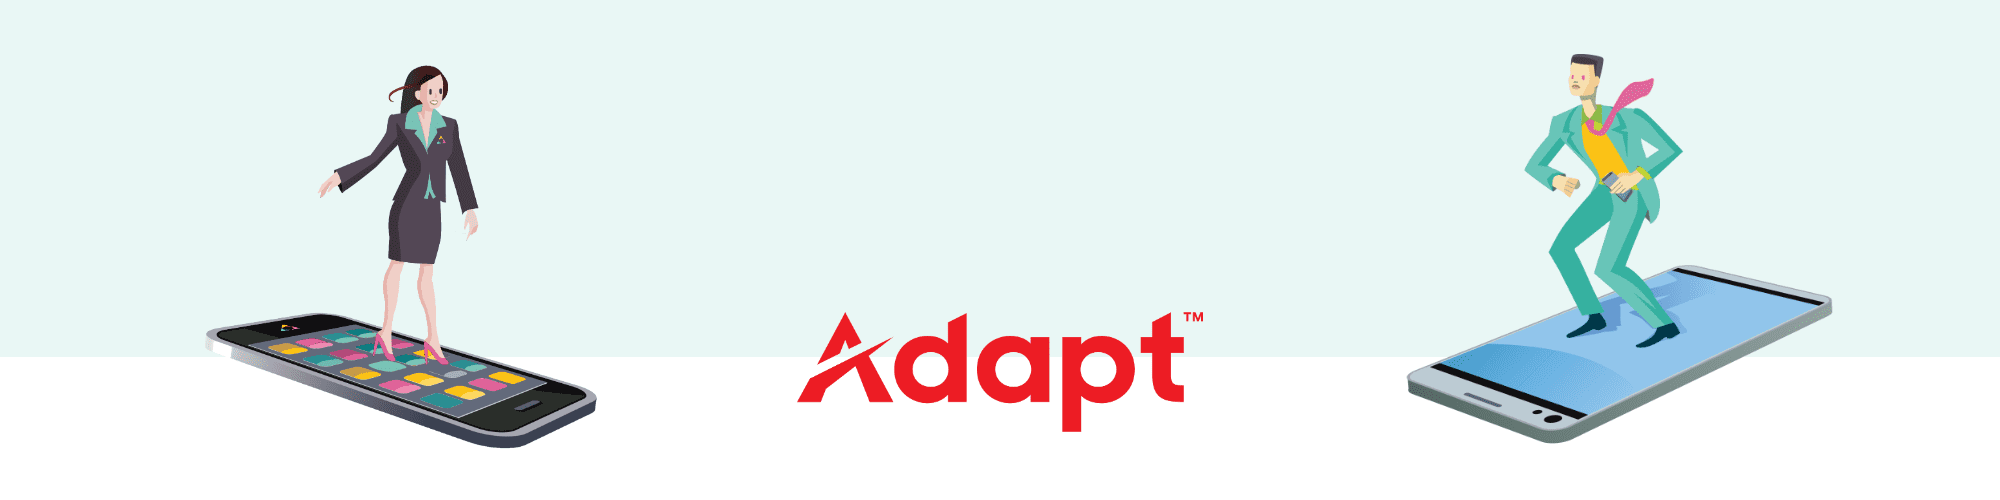 adapt-training-ata-case-study-banner